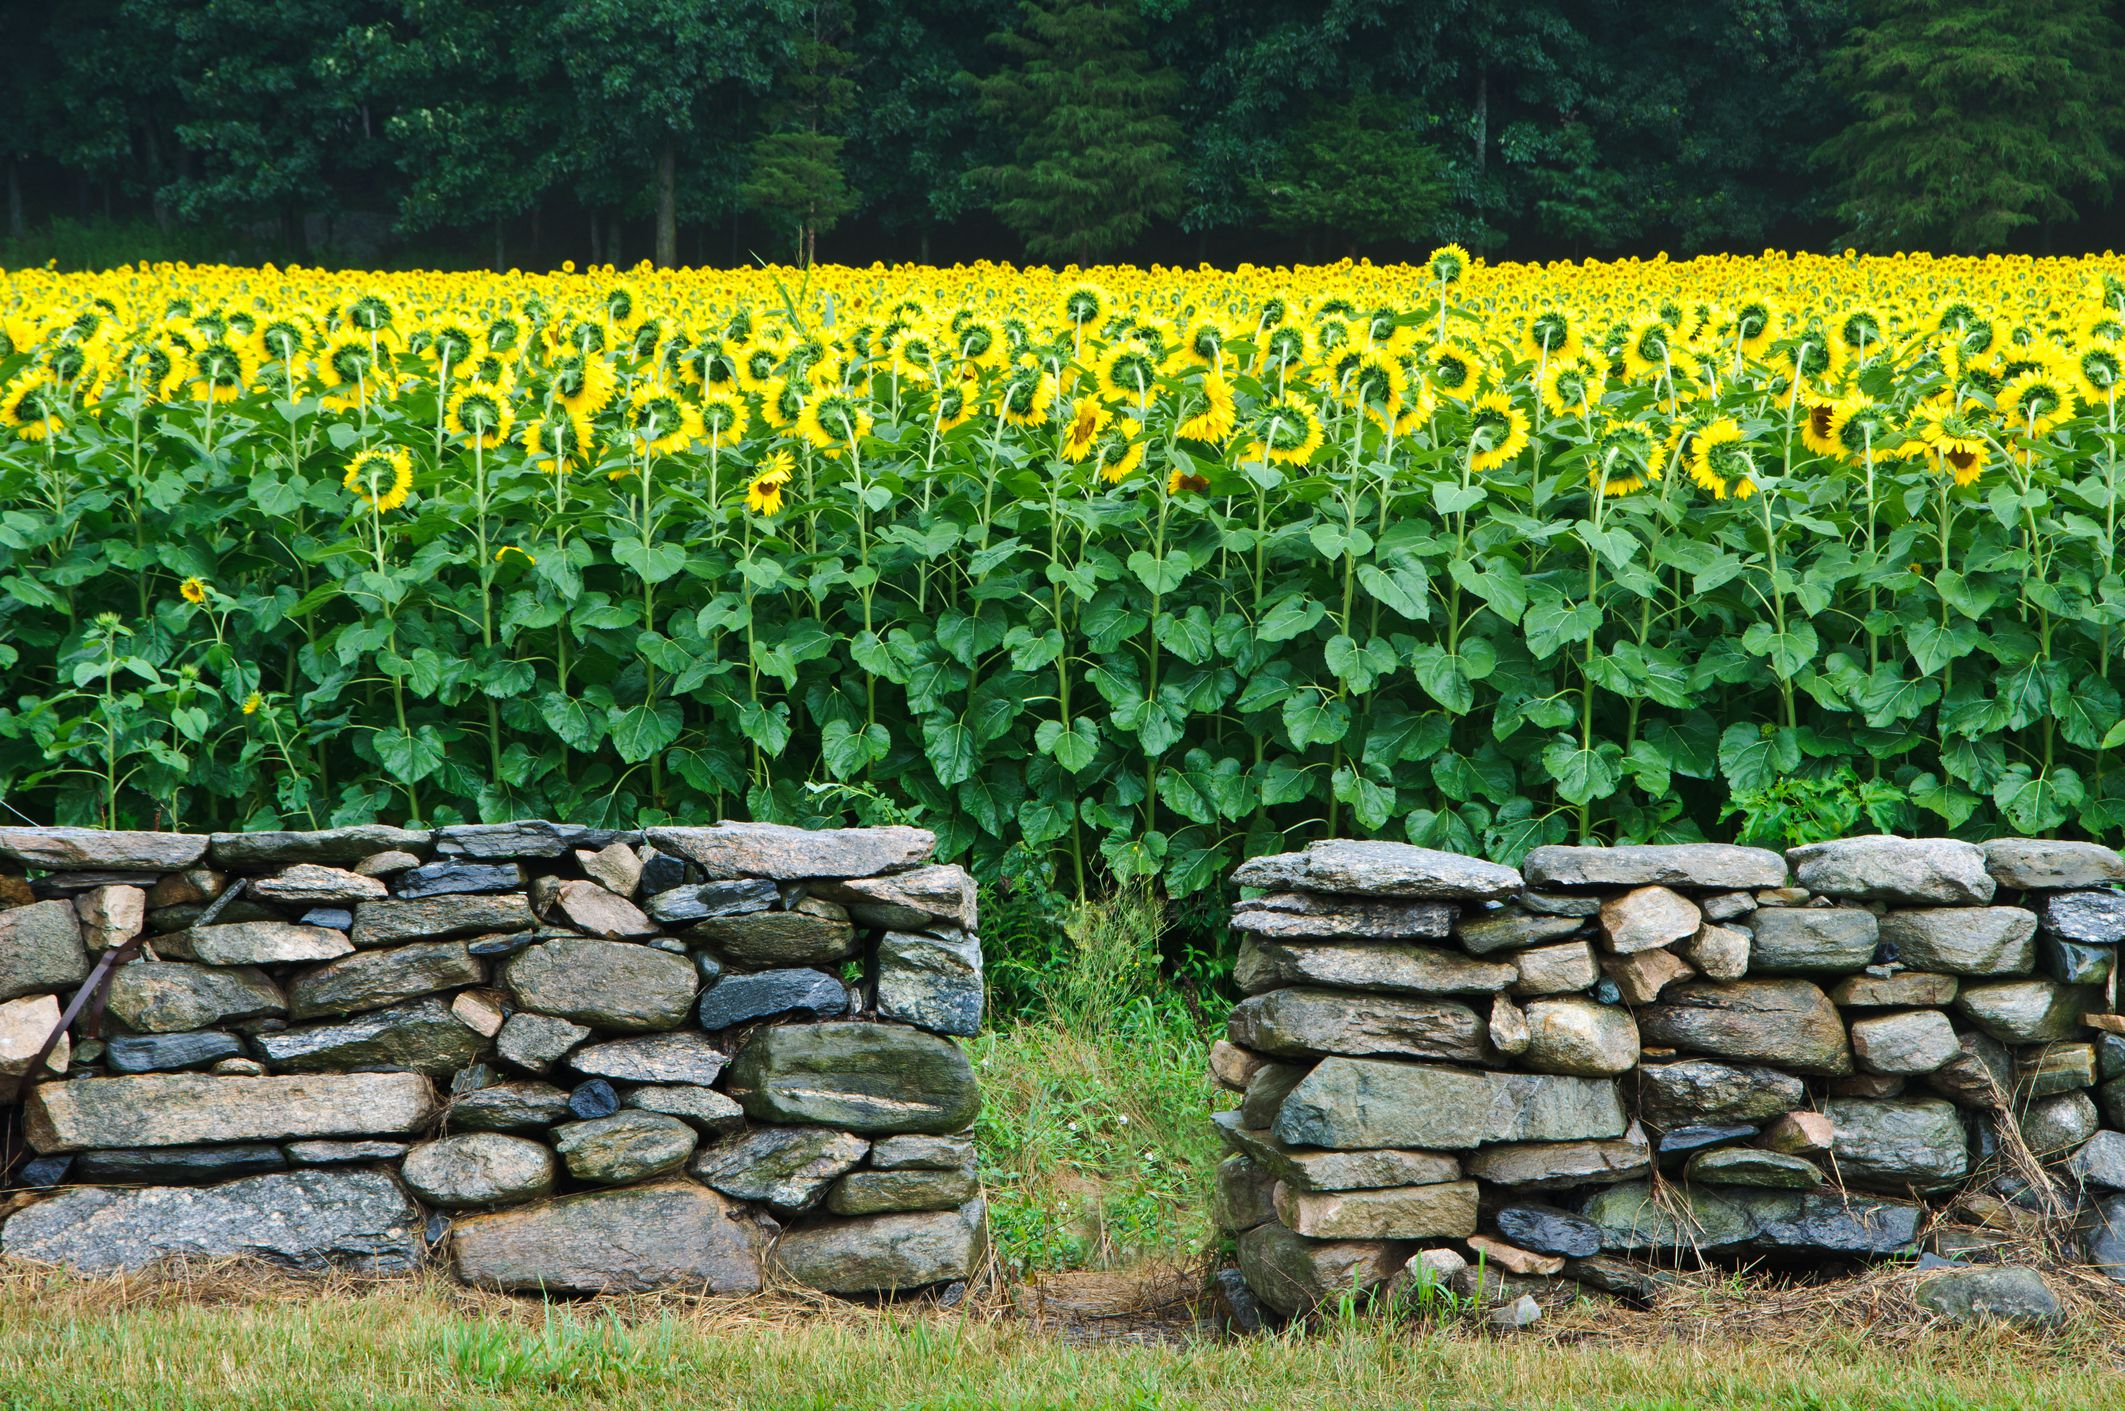 Building stone retaining walls in 16 easy steps how much stone do i need to build a wall amipublicfo Choice Image